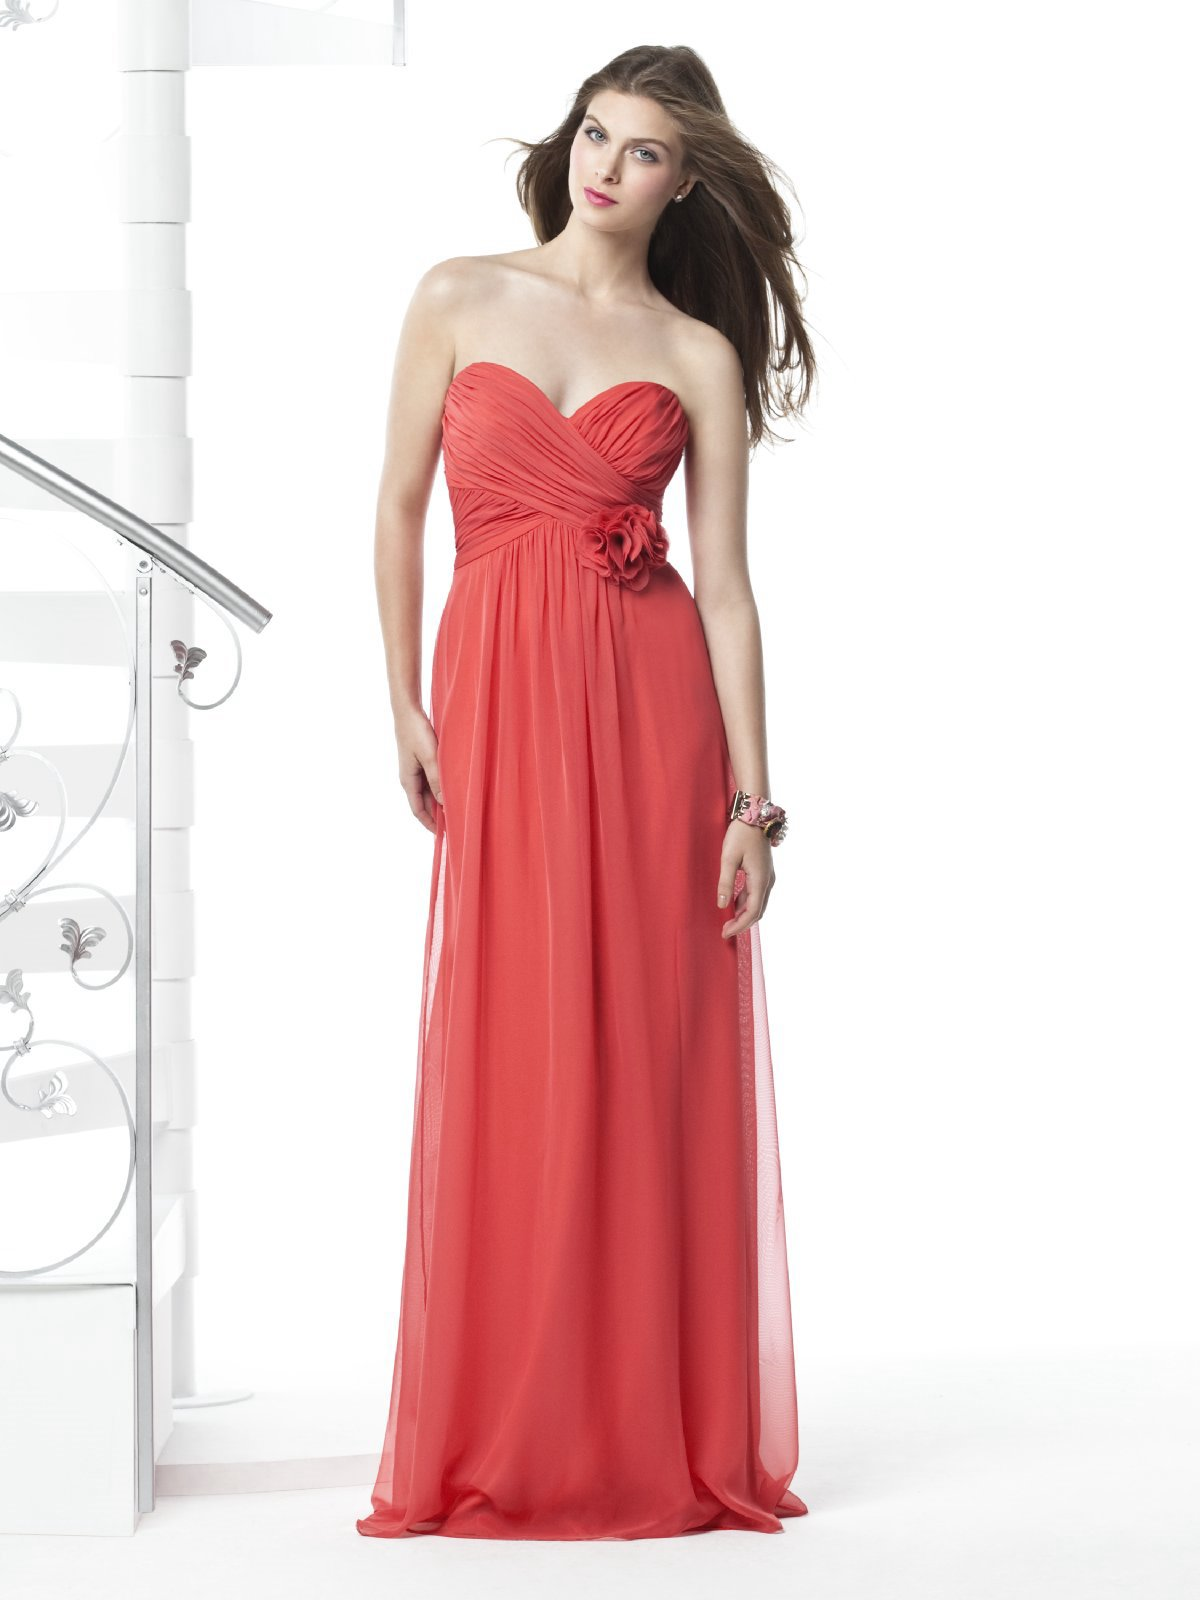 Watermelon Empire Sweetheart Strapless Zipper Pleated Floor Length Prom Dresses With Flowers